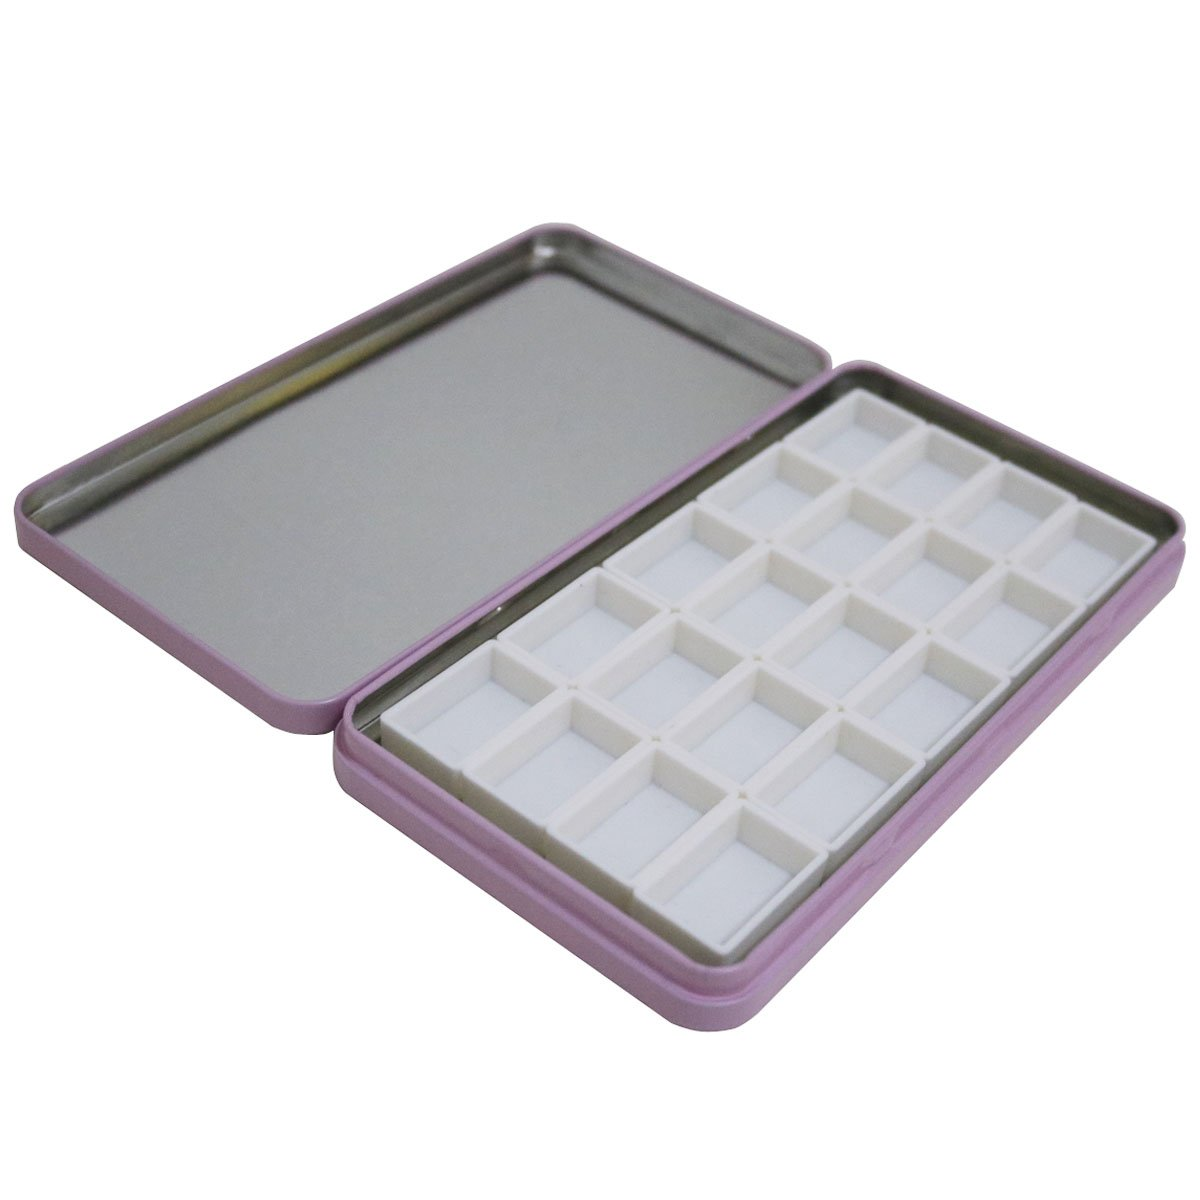 FCLUB Watercolor Tins Palette Paint Case with 20Pcs Empty Full Pans and 20pcs Magnetic Squares DIY Your Travel Watercolor Kit